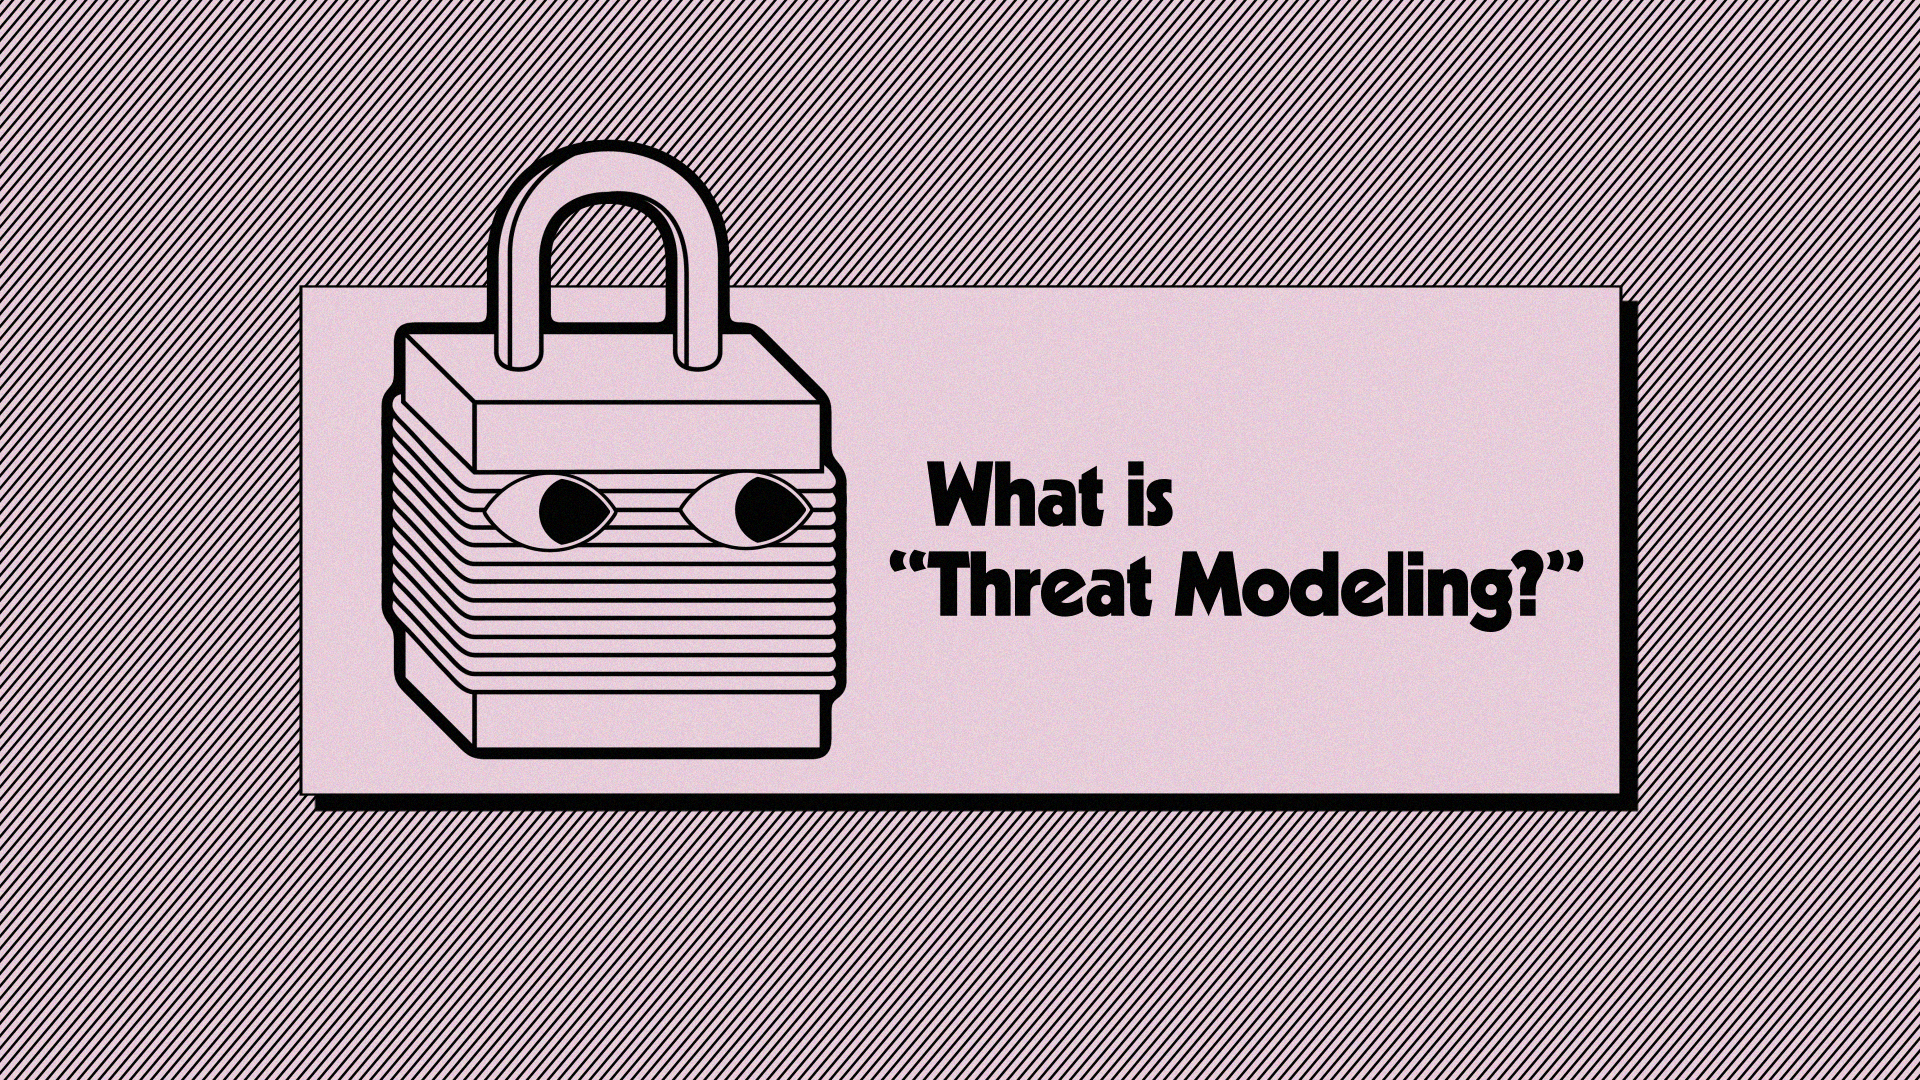 What Is Threat Modeling?